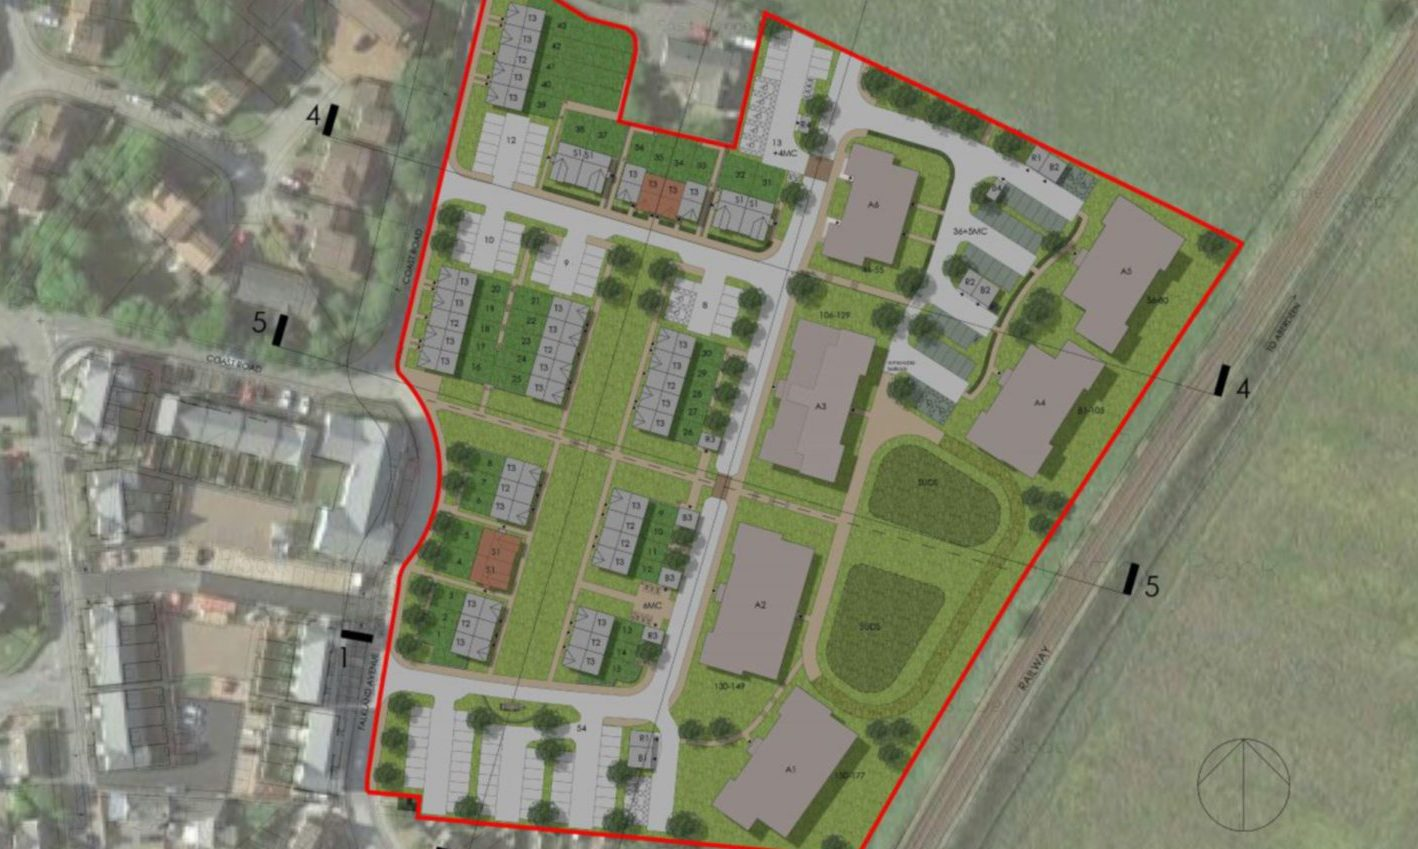 A diagram outlines where the houses at Stationfields could be construction.